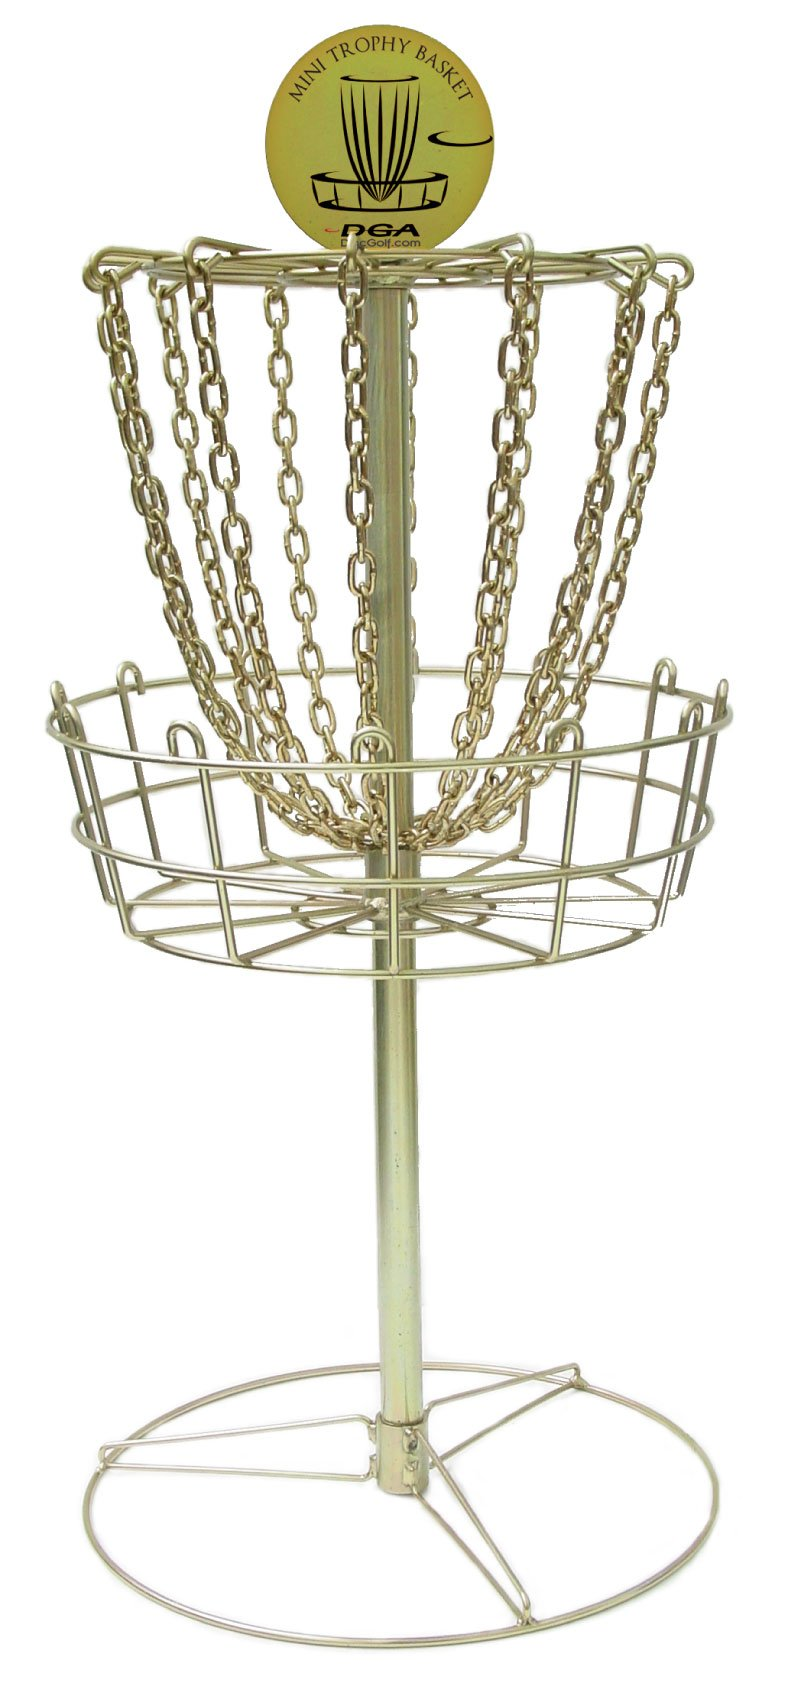 DGA Mini Trophy Disc Golf Basket (Gold)